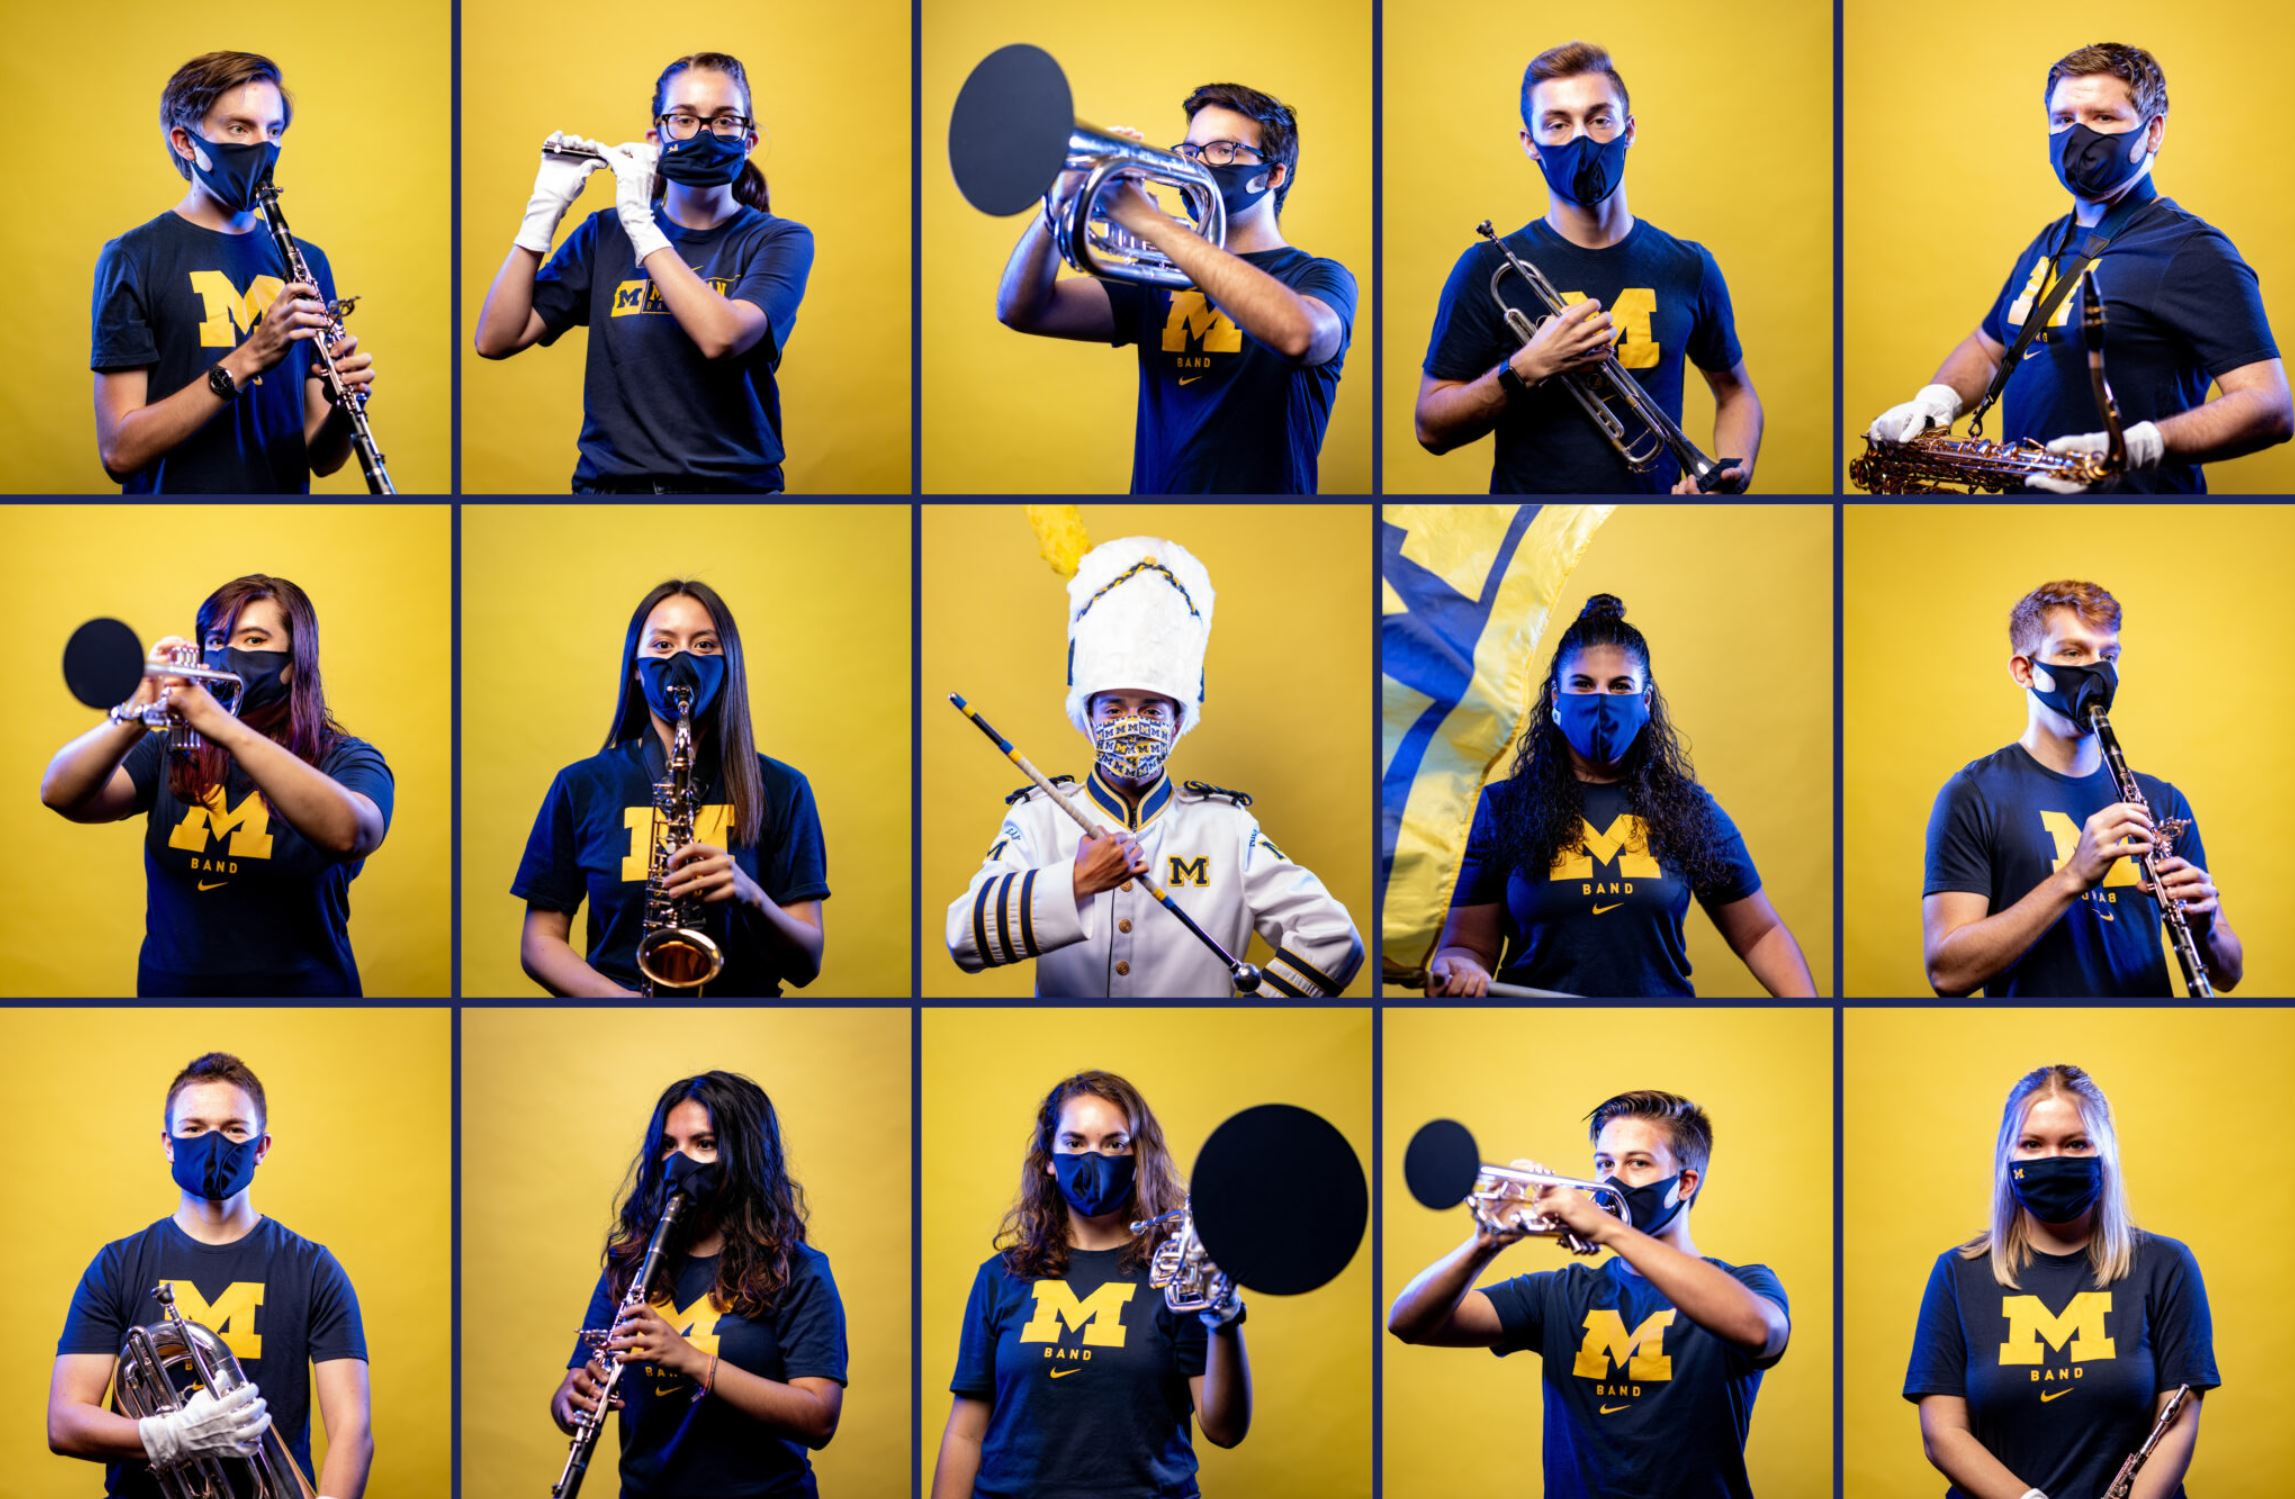 Michigan Marching Band members. Image credit: Eric Bronson/Michigan Photography